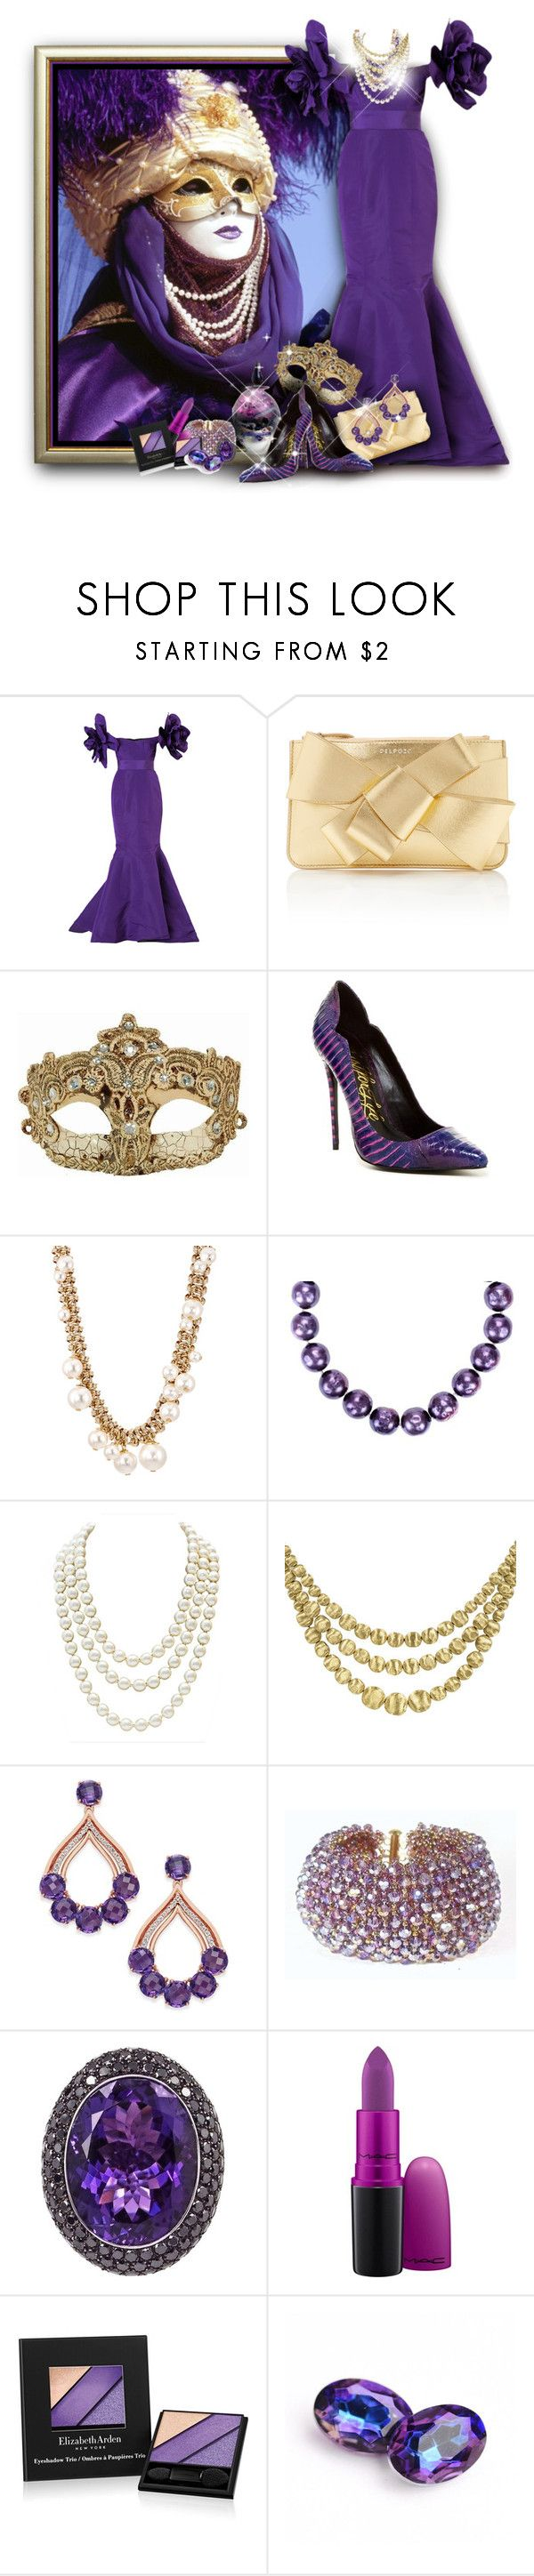 """""""Royal Purple Carnival Queen"""" by franceseattle ❤ liked on Polyvore featuring Bambah, Delpozo, Lust For Life, Lanvin, Chanel, Marco Bicego, Plukka, MAC Cosmetics and Elizabeth Arden"""